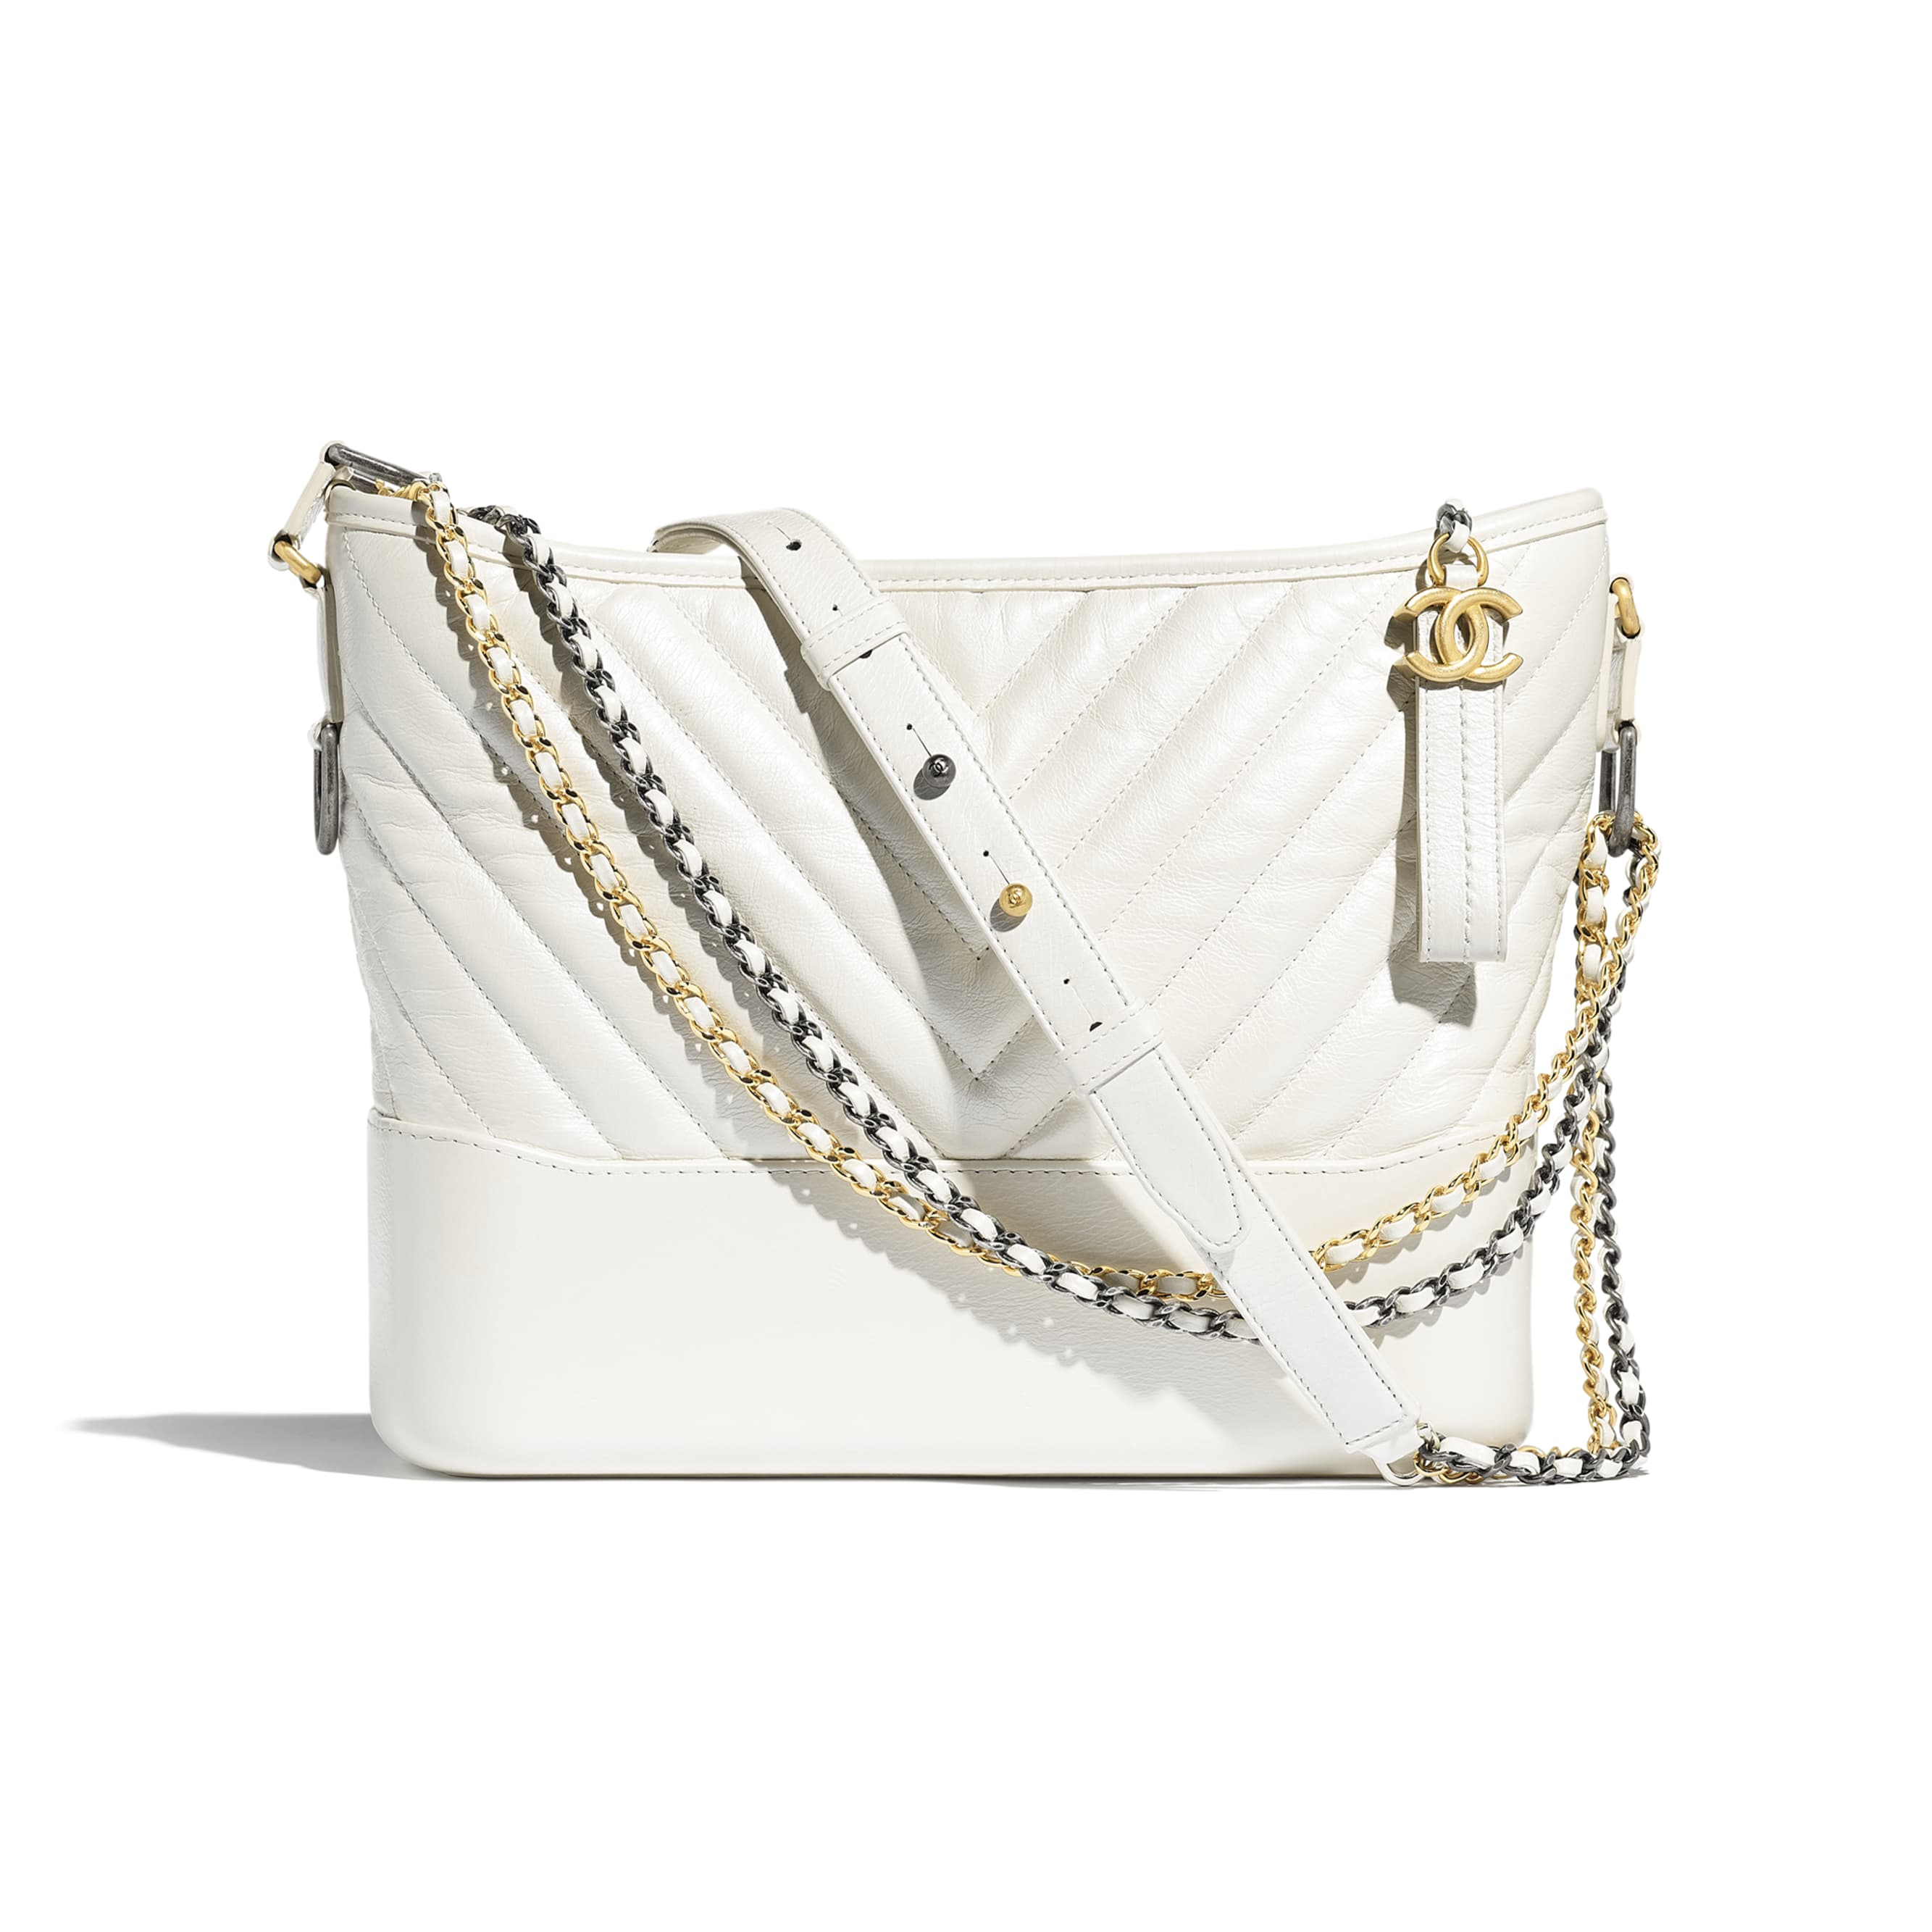 CHANEL'S GABRIELLE Large Hobo Bag - White - Metallic Crumpled Calfskin, Gold-Tone & Silver-Tone Metal - Default view - see standard sized version